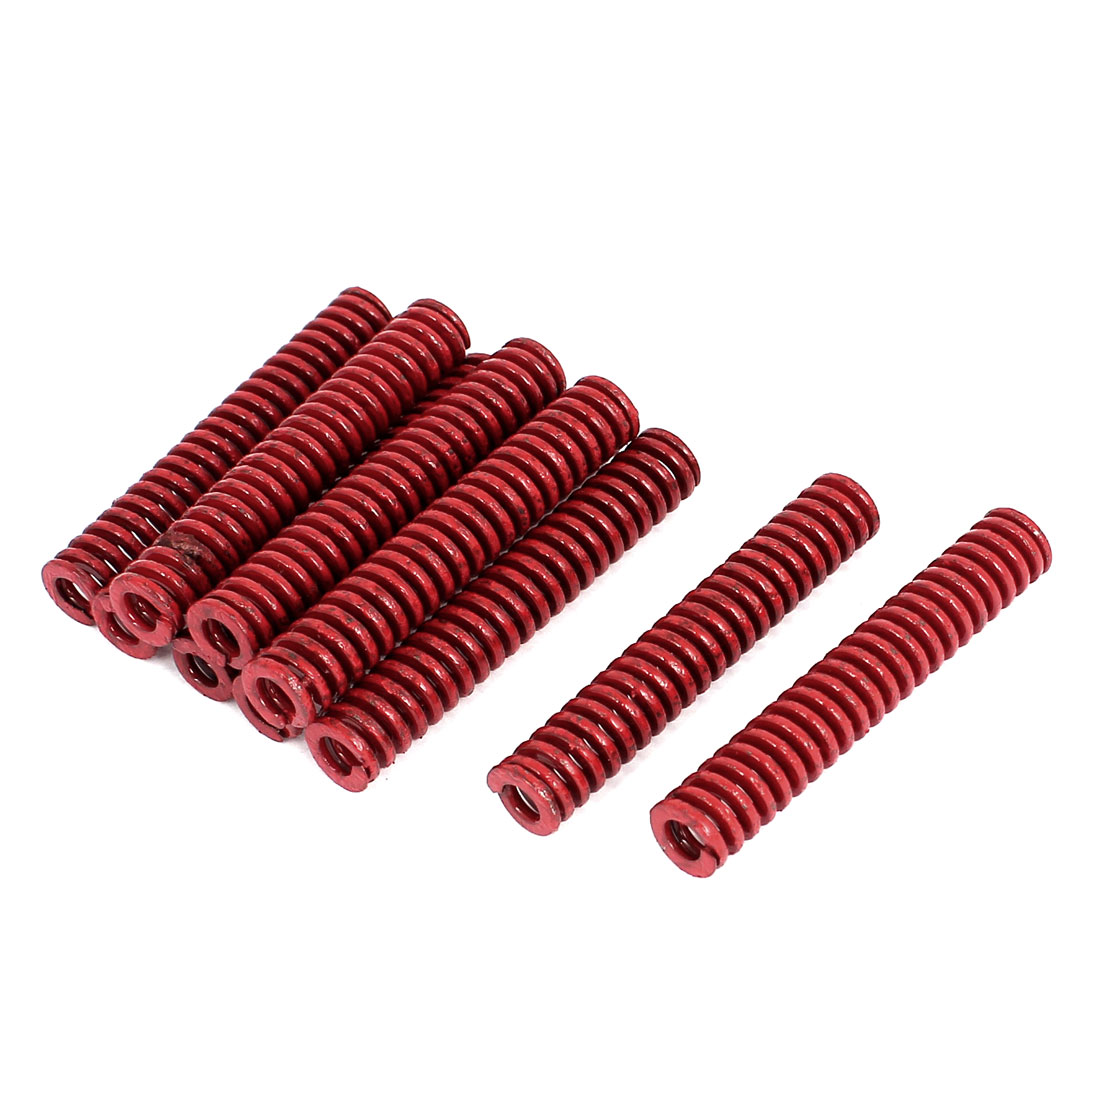 10mm OD 60mm Long Medium Load Stamping Compression Mold Die Spring Red 10pcs